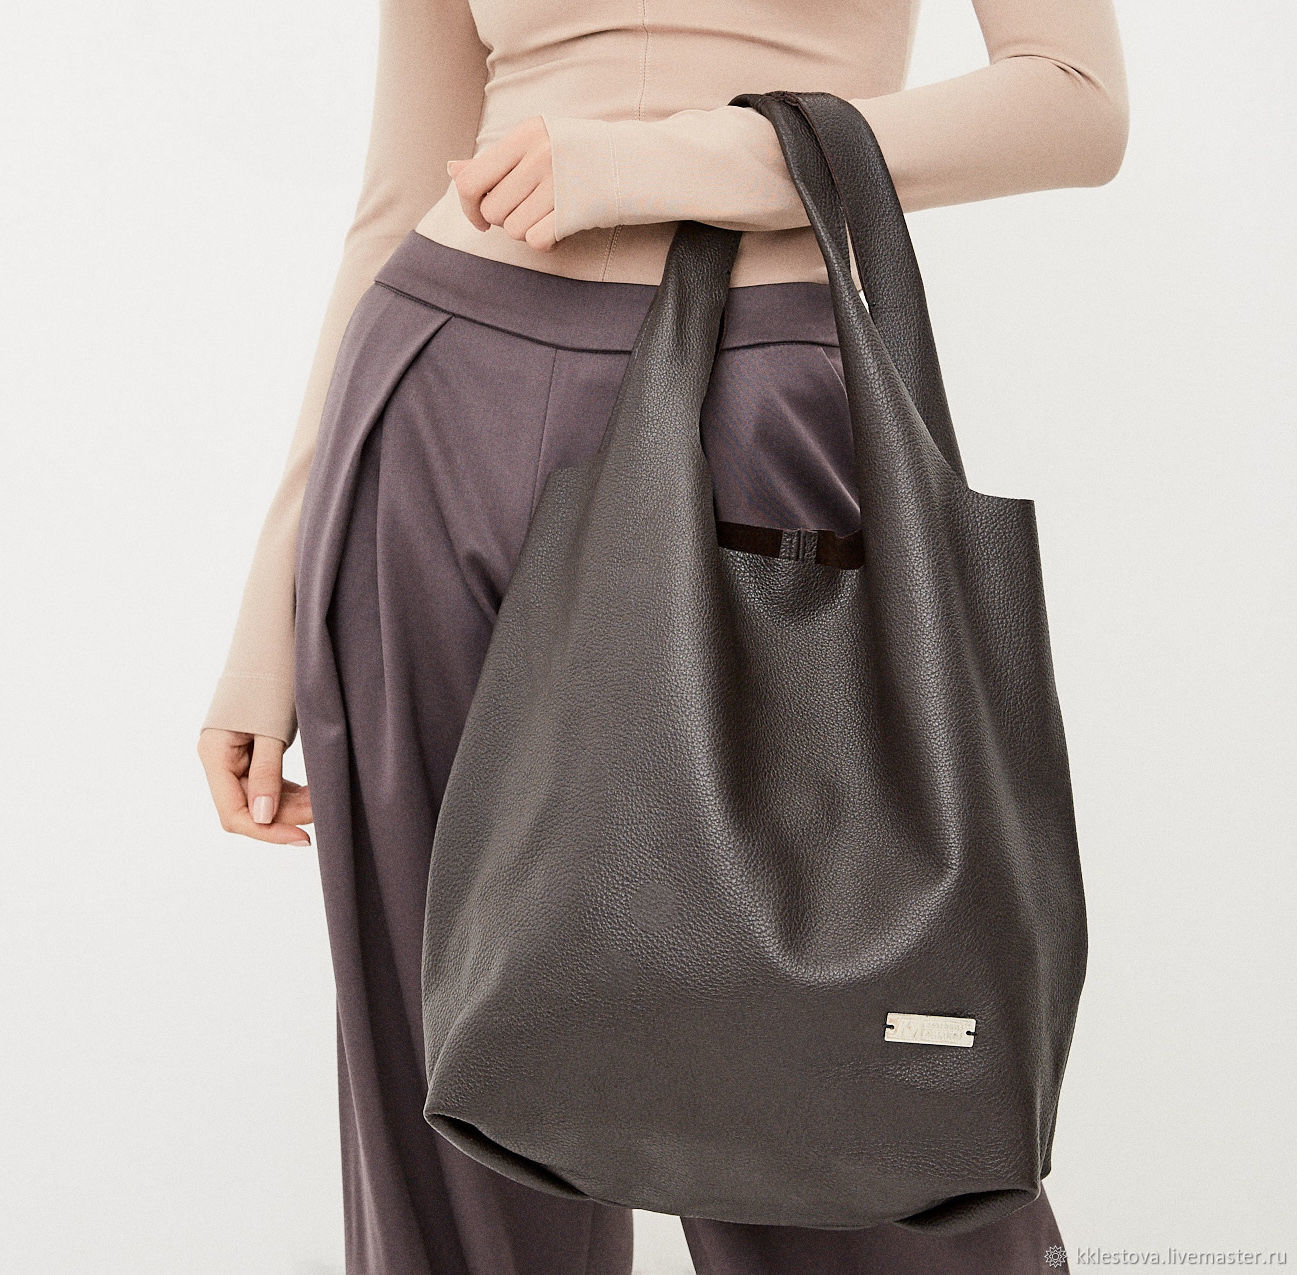 Bag - Bag Pack - medium size with pocket and applique, Sacks, Moscow,  Фото №1